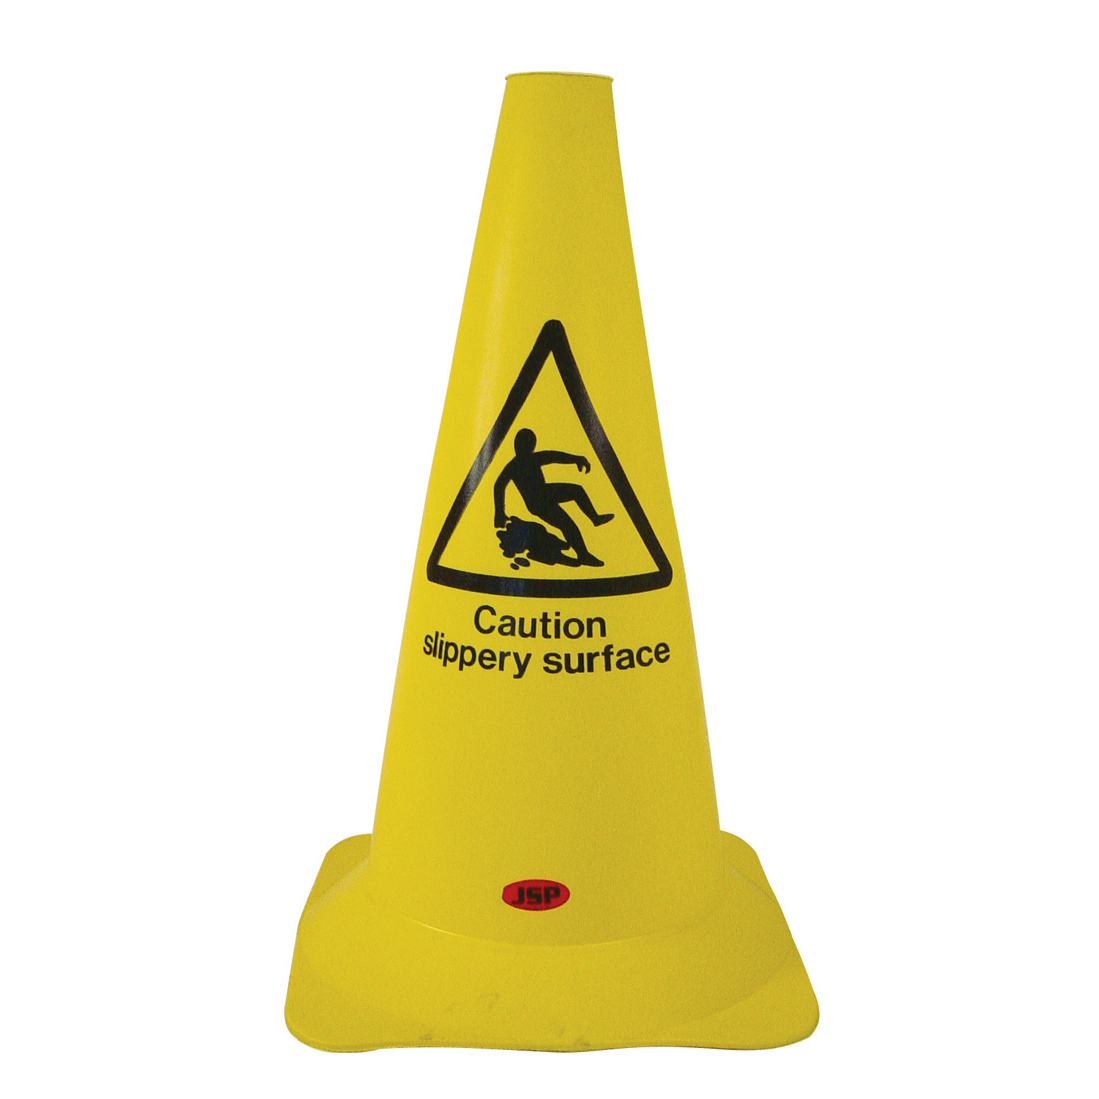 Warning Safety Cone PVC Caution Slippery Surface H500mm Yellow/Black text